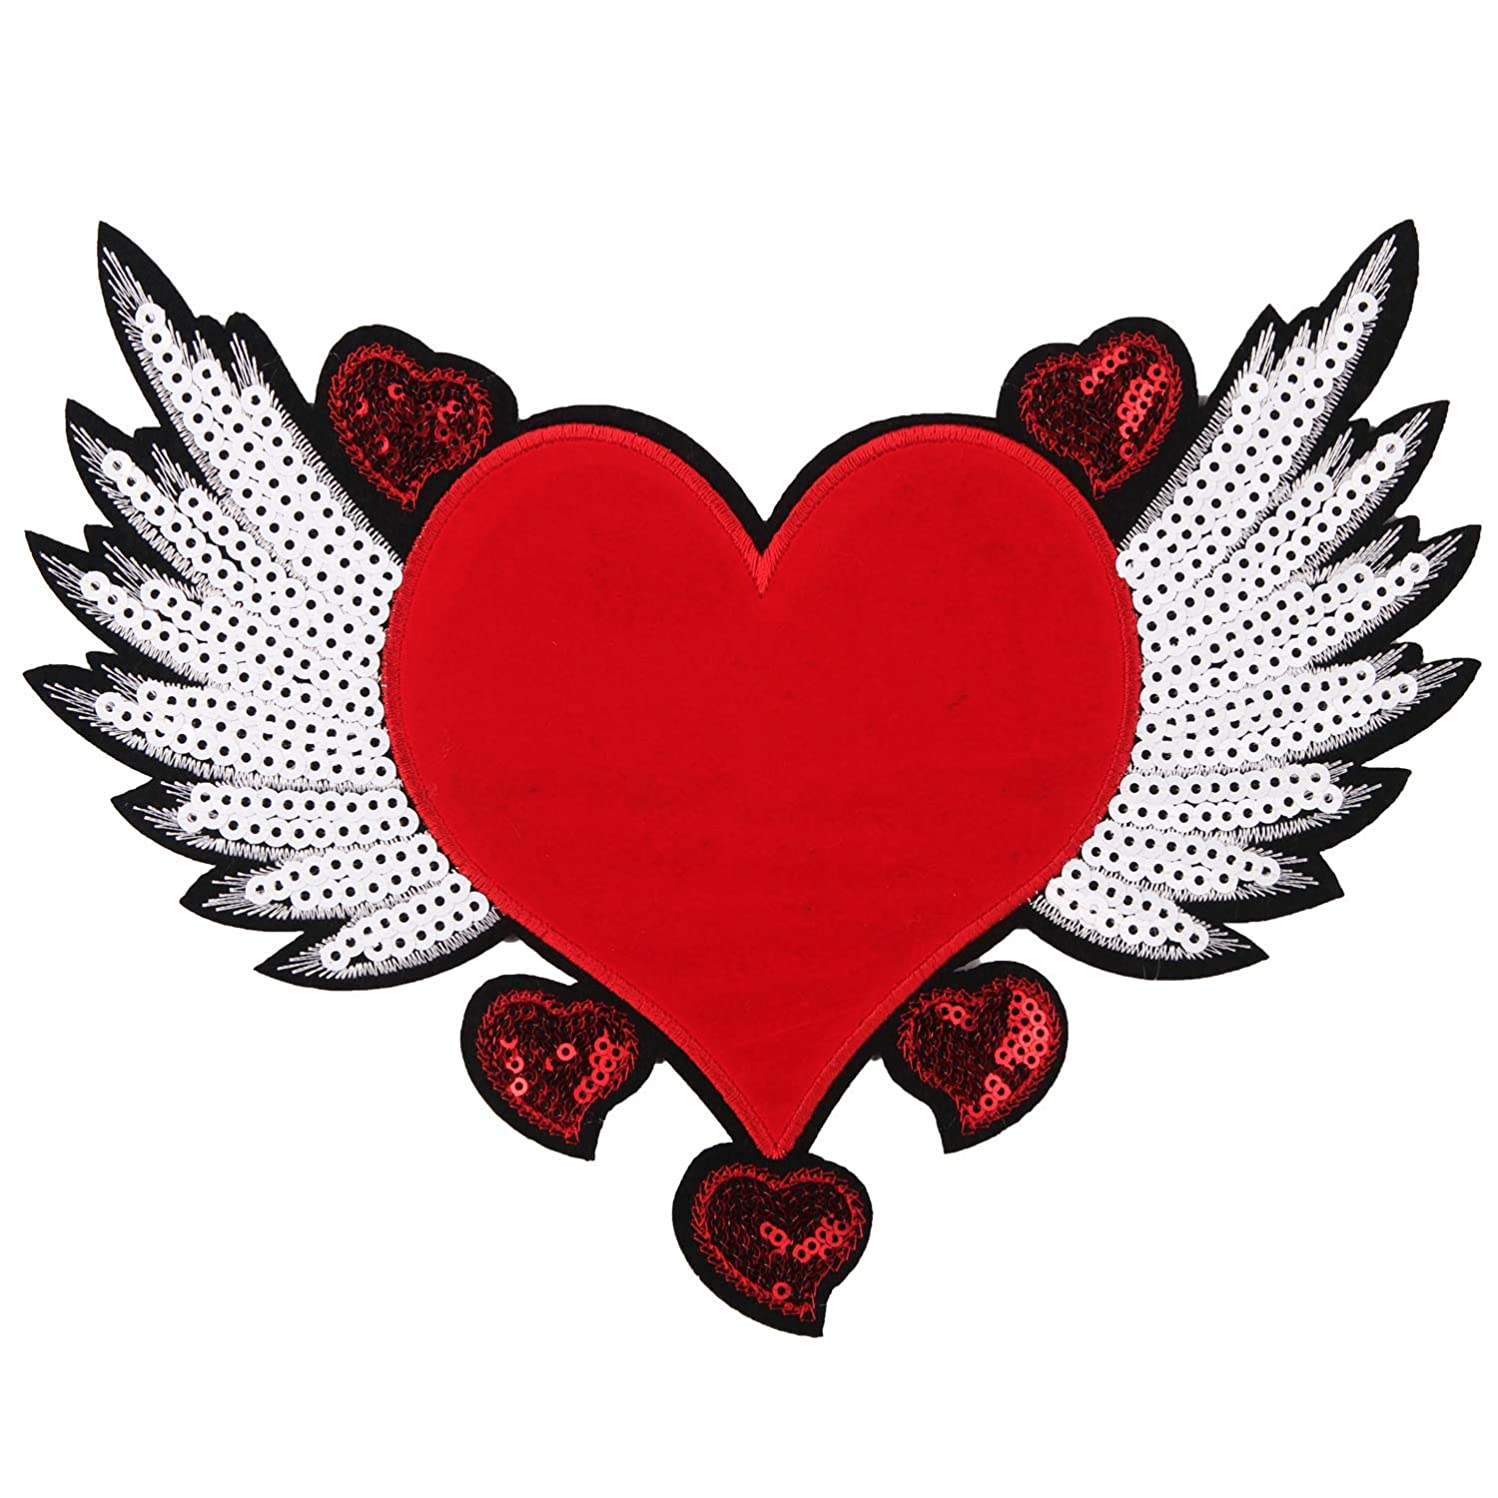 1 Pcs Love Large Sequin Heart Evil Eyes Patches No Glue Cartoon Motif Applique Embroidery Garment Patch Sewing on for Clothes Kids T Shirt Jeans DIY Crafts (Style 7)